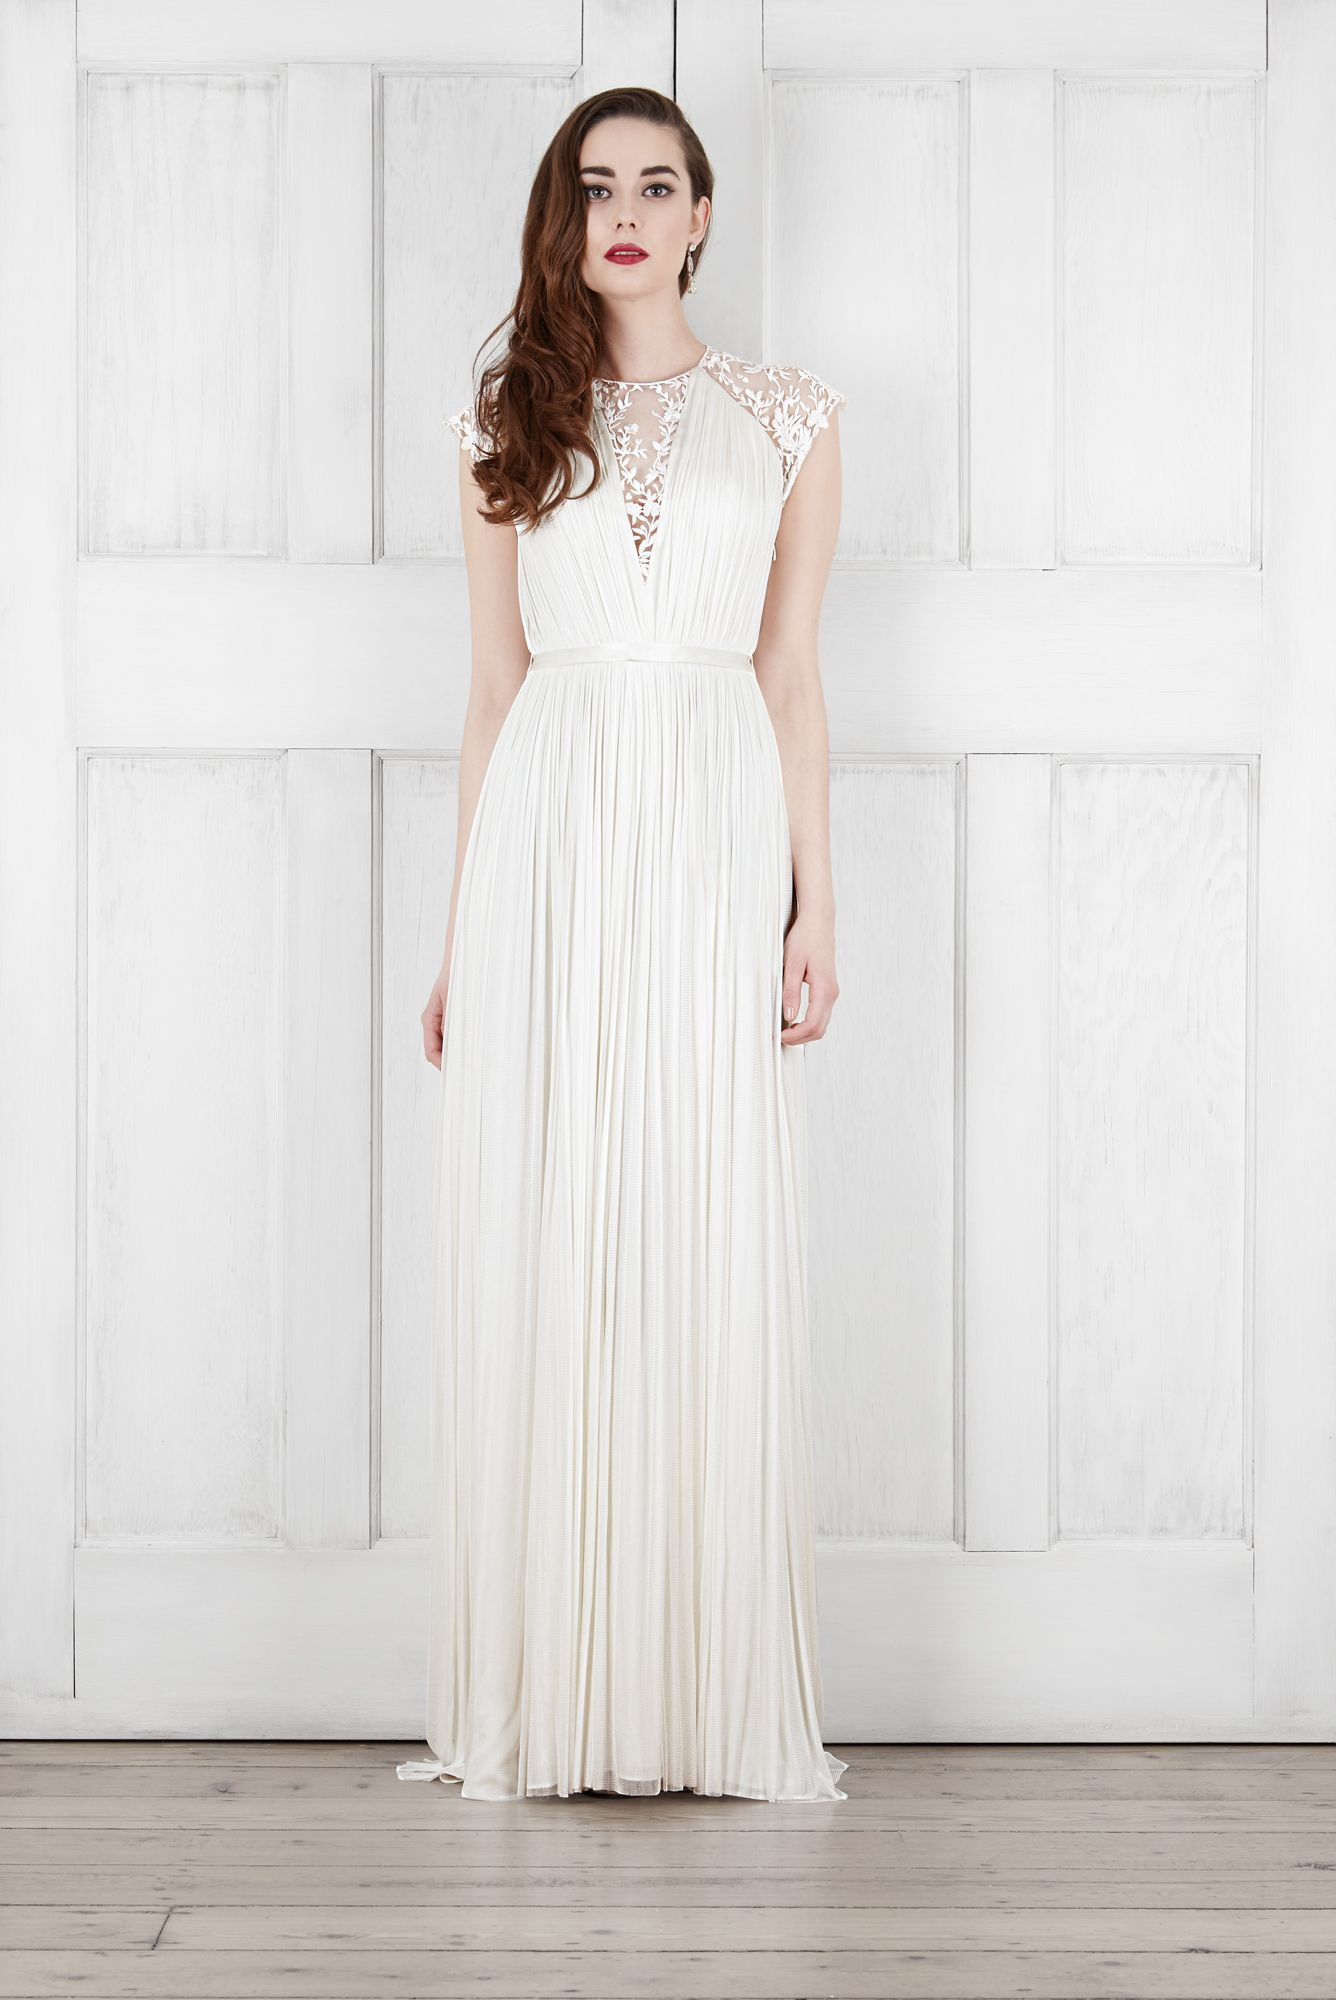 Pin by Sei Yulay on My wedding dress | Pinterest | Catherine Deane ...